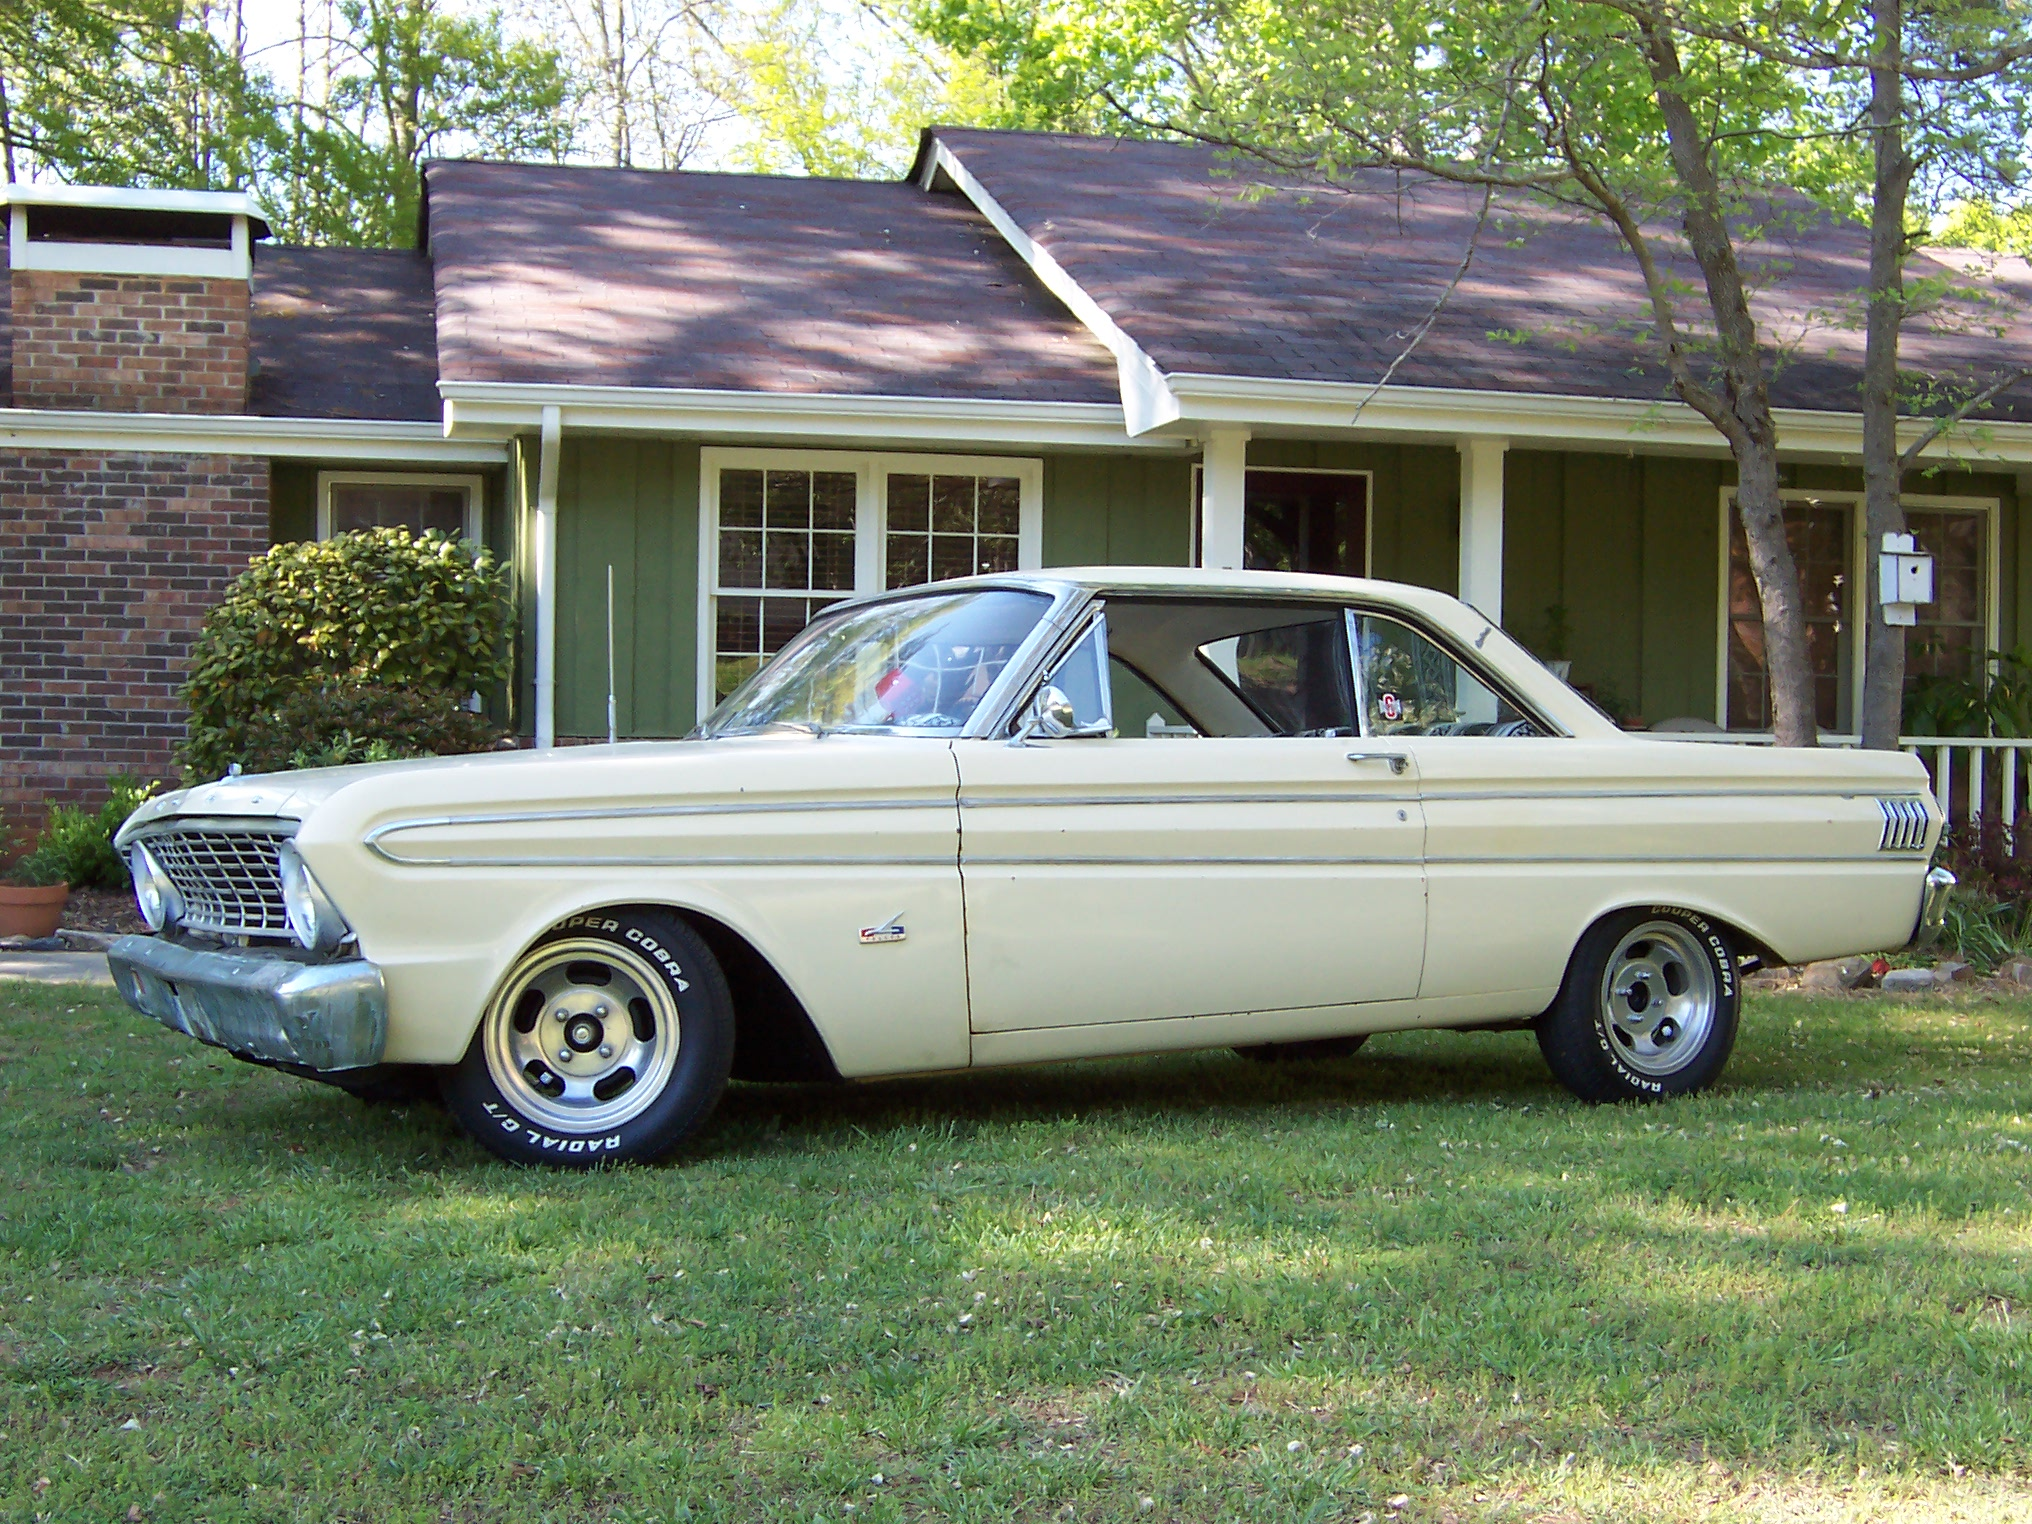 66 Ford Falcon 6 Cylinder Engine Parts moreover 12199 1964 ford galaxie together with Ford Falcon 1964 Convertible furthermore 1959 Ford Country Squire Station Wagon further 1964 Ford Falcon 4 Door. on 1964 ford falcon sprint